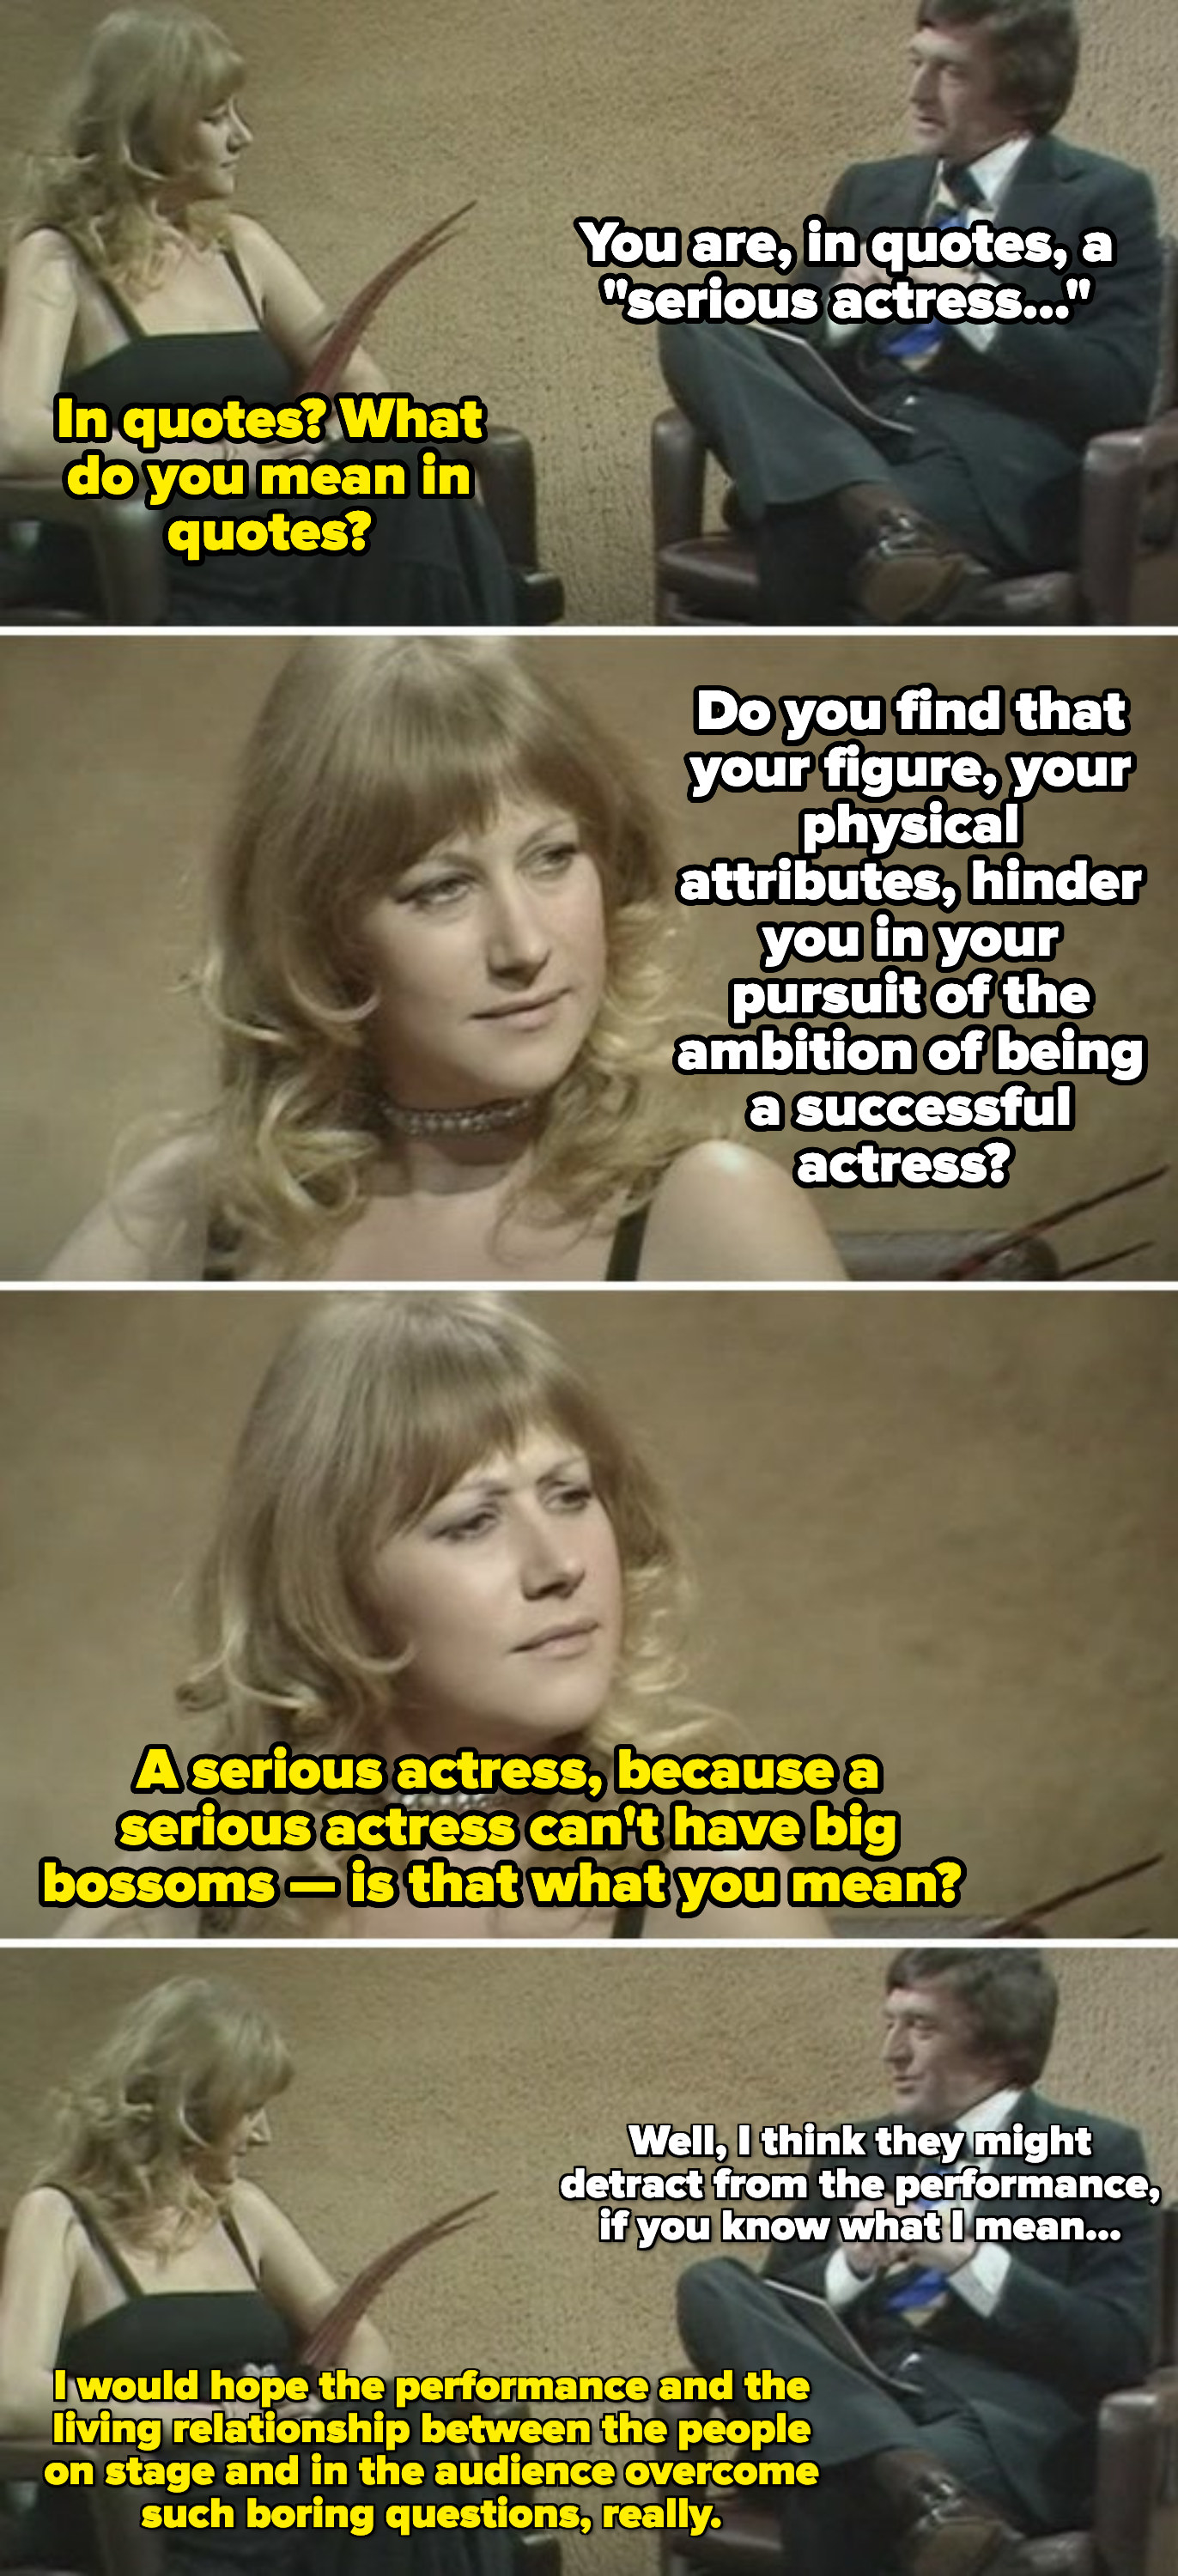 """Helen Mirren responding to the male reporter's inappropriate comment about her breasts, saying: """"I would hope the performance and the relationship between the people on stage and in the audience overcome such boring questions"""""""